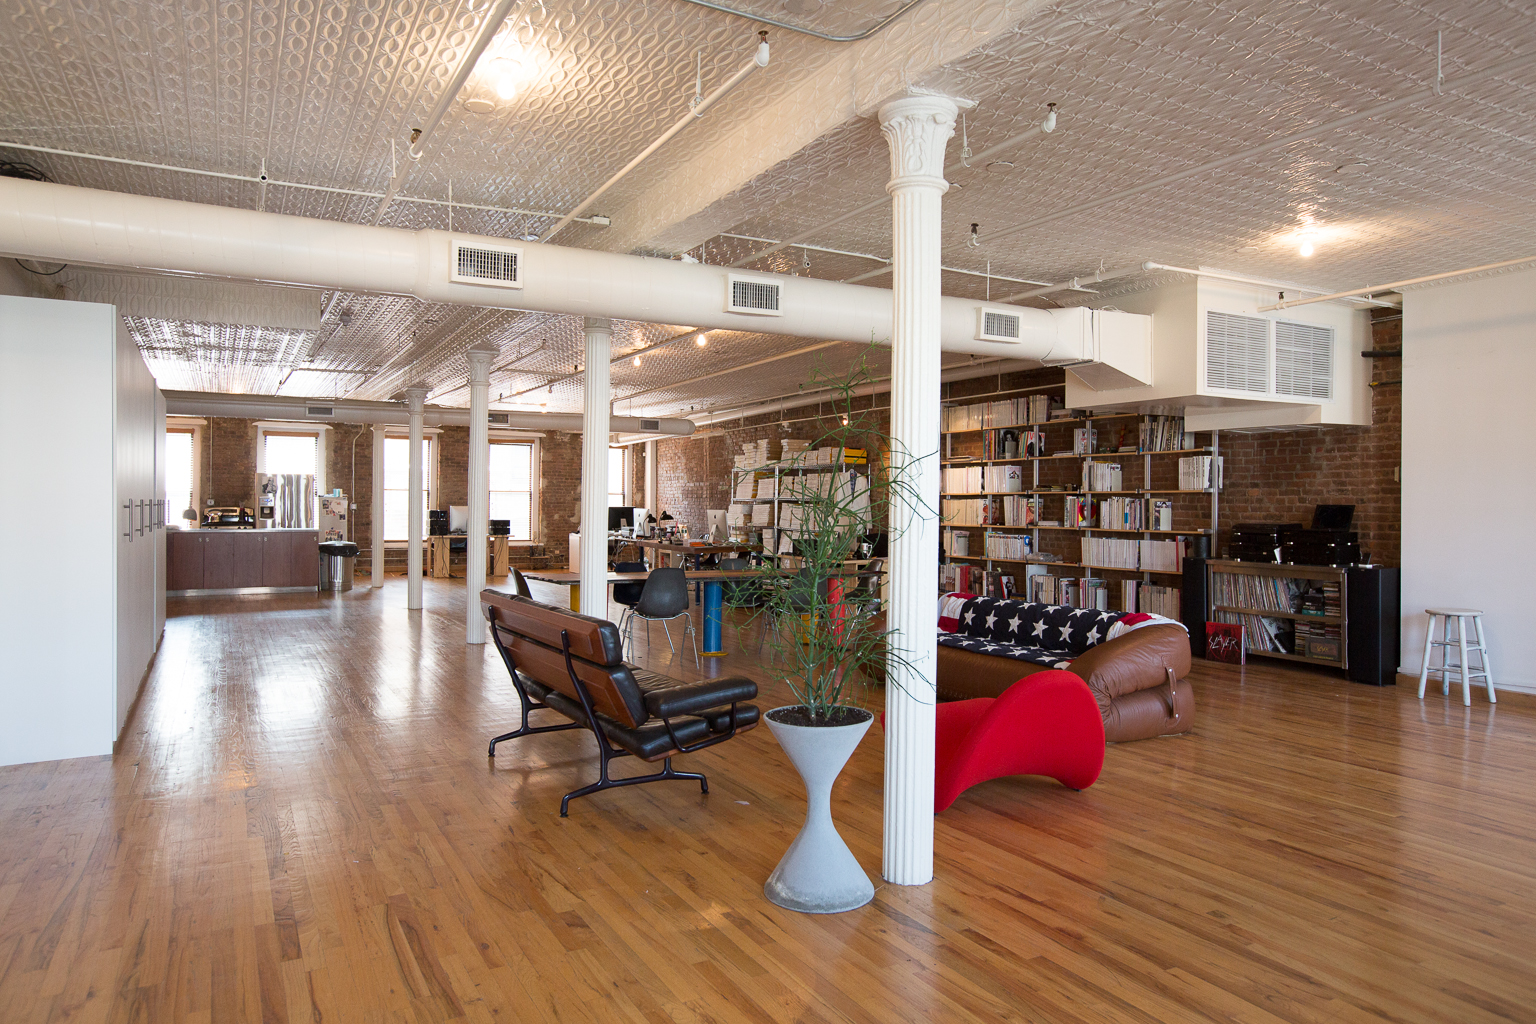 4500 sq.ft Loft Lower Manhattan for Rent – $15,000/mo